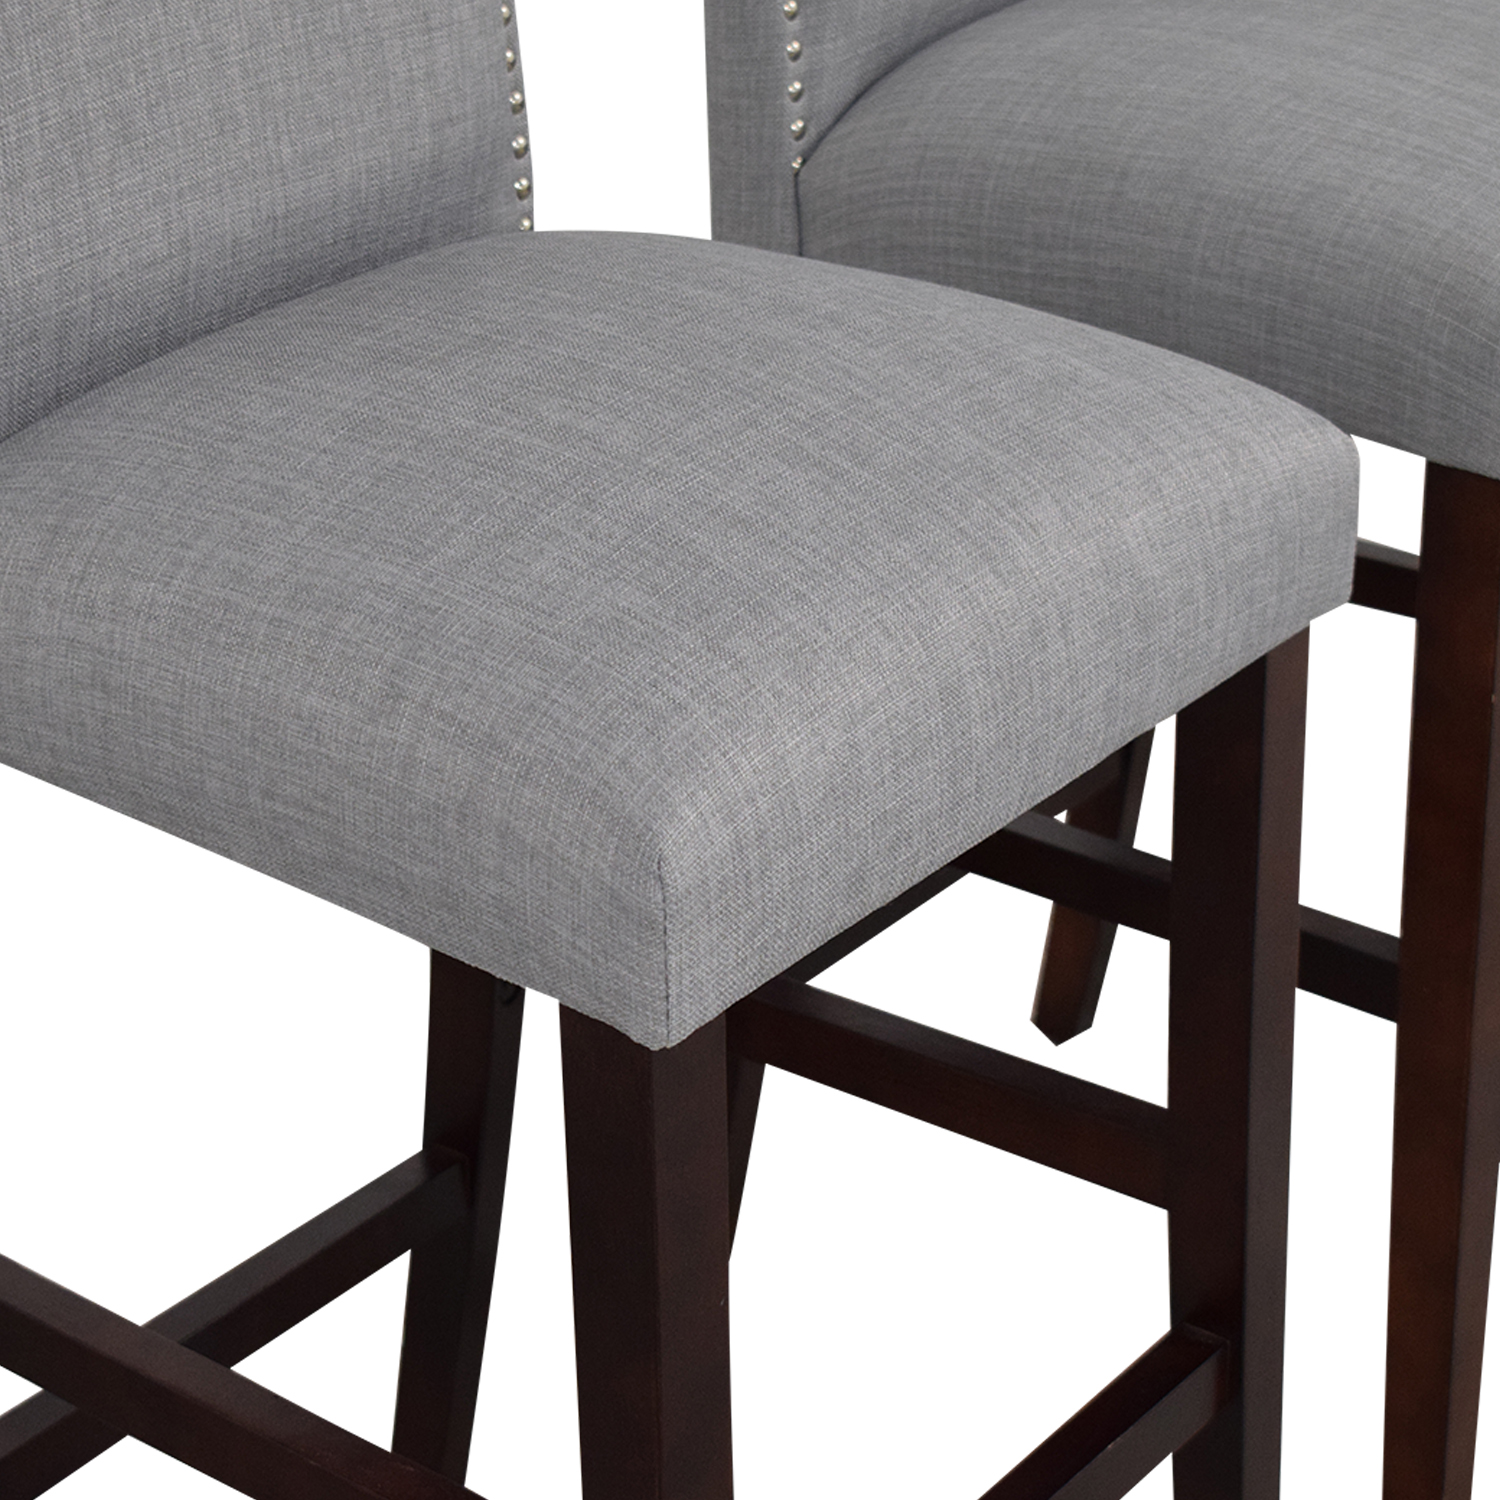 Skyline Furniture Nail Button Camel Back Bar Stools grey and brown